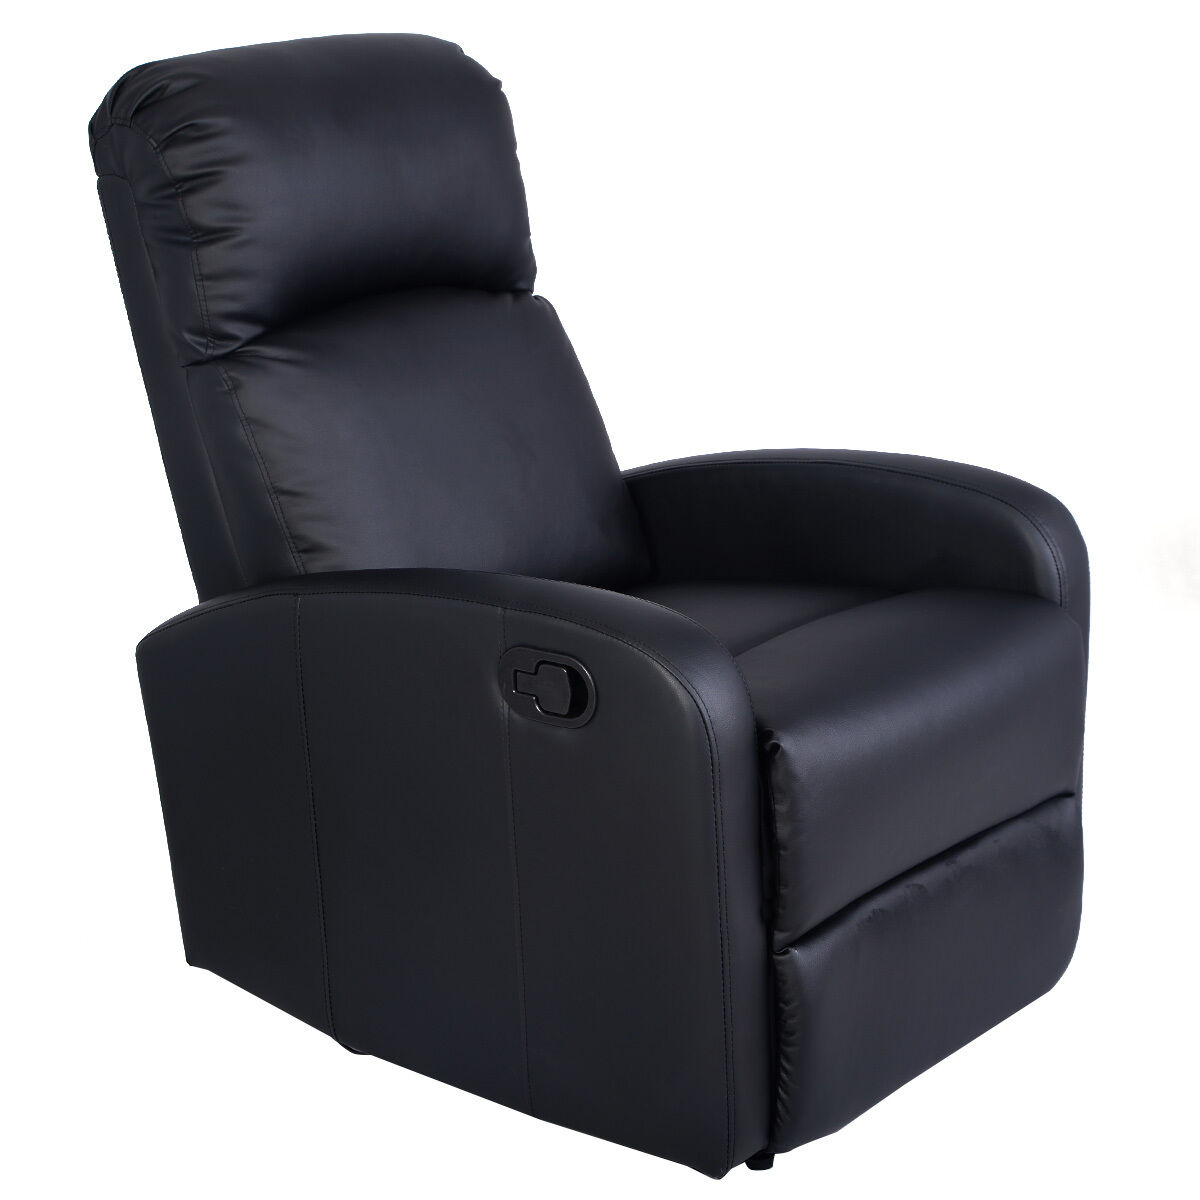 Picture 1 of 10 ...  sc 1 st  eBay & Giantex Manual Recliner Chair Black Lounger Leather Sofa Seat Home ... islam-shia.org